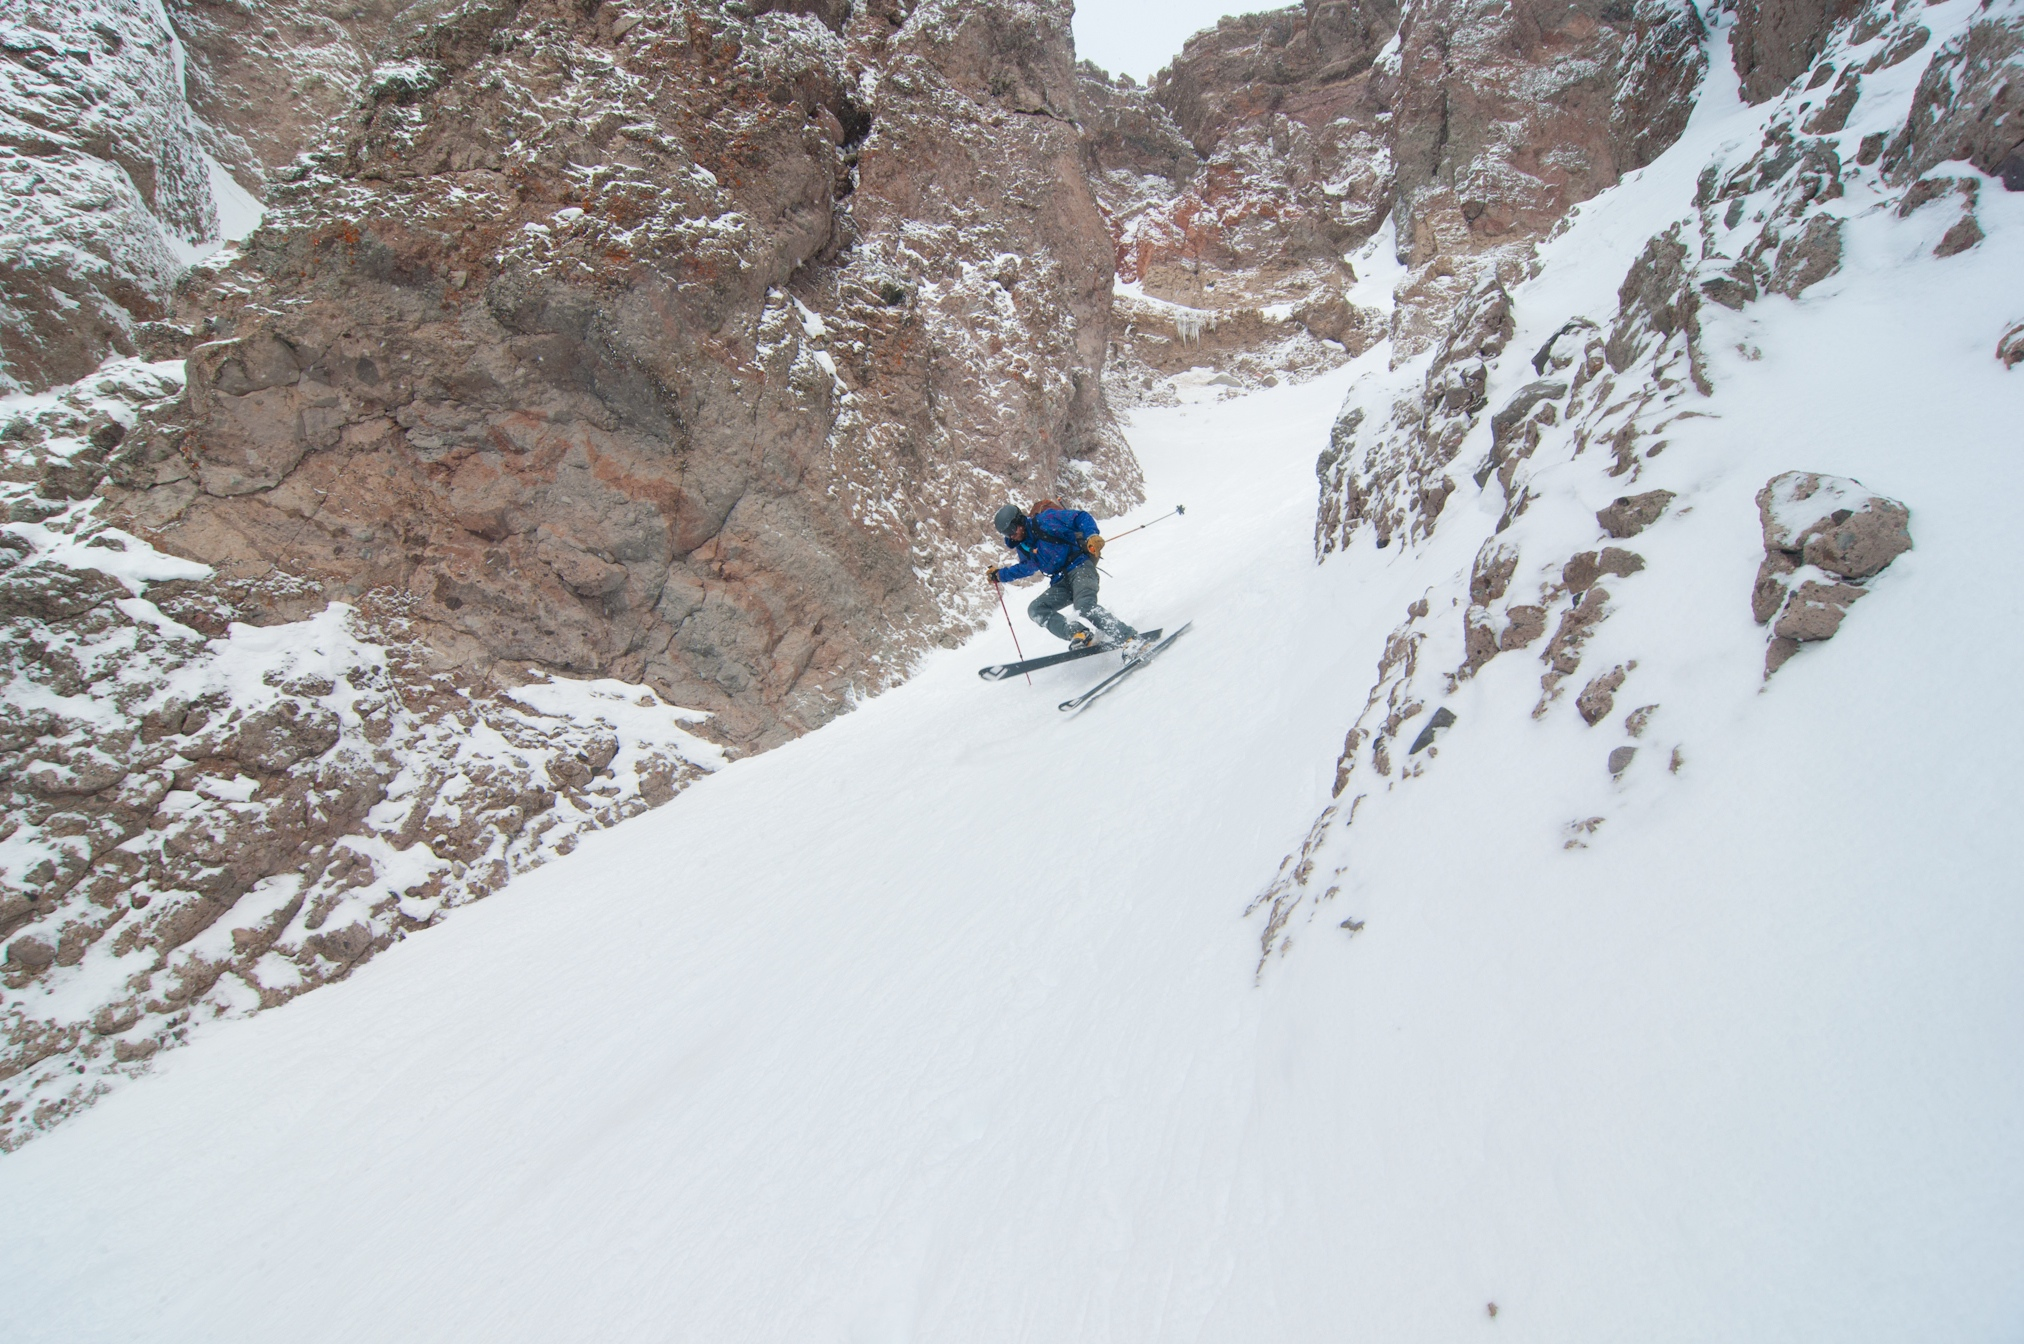 Tele Rob in prime couloir skiing form